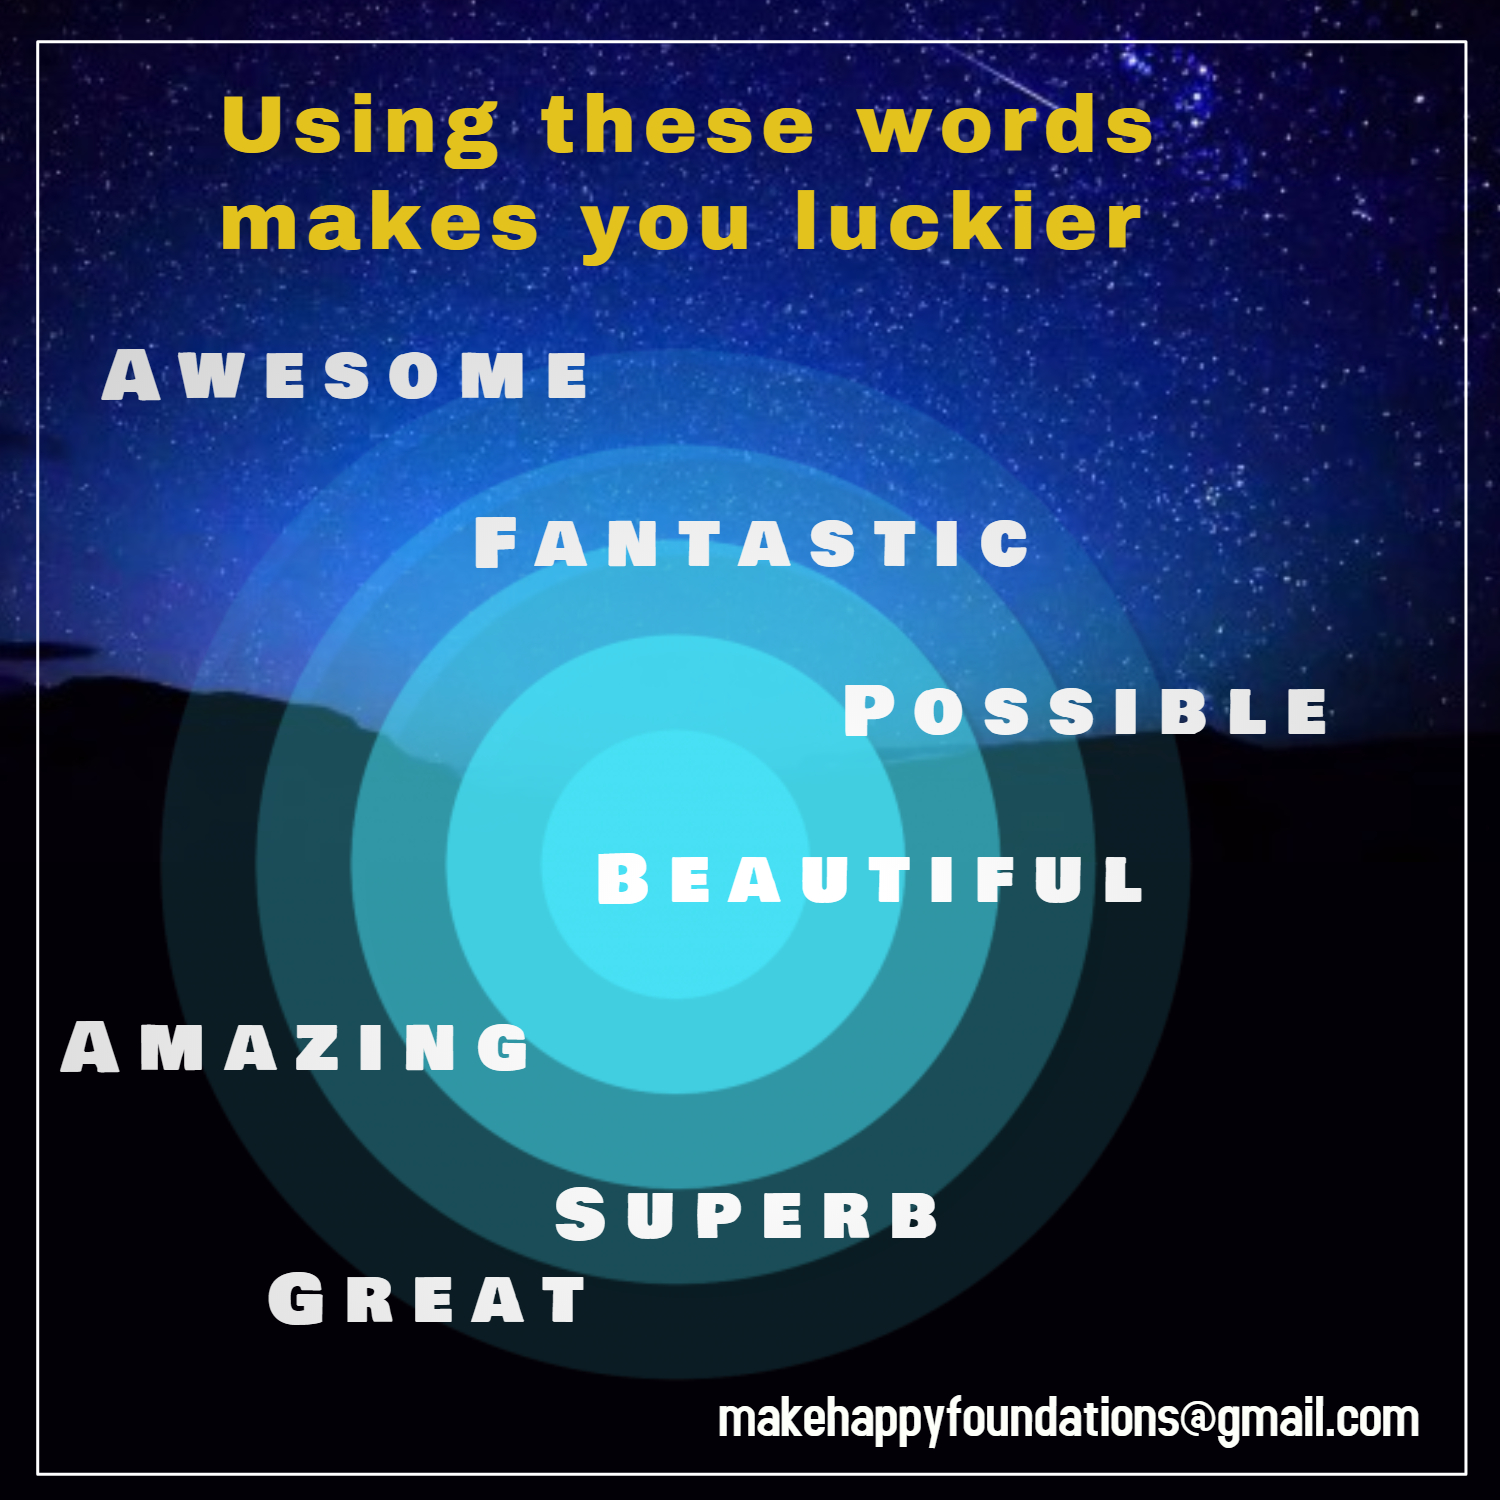 Did you know using certain words makes you Luckier